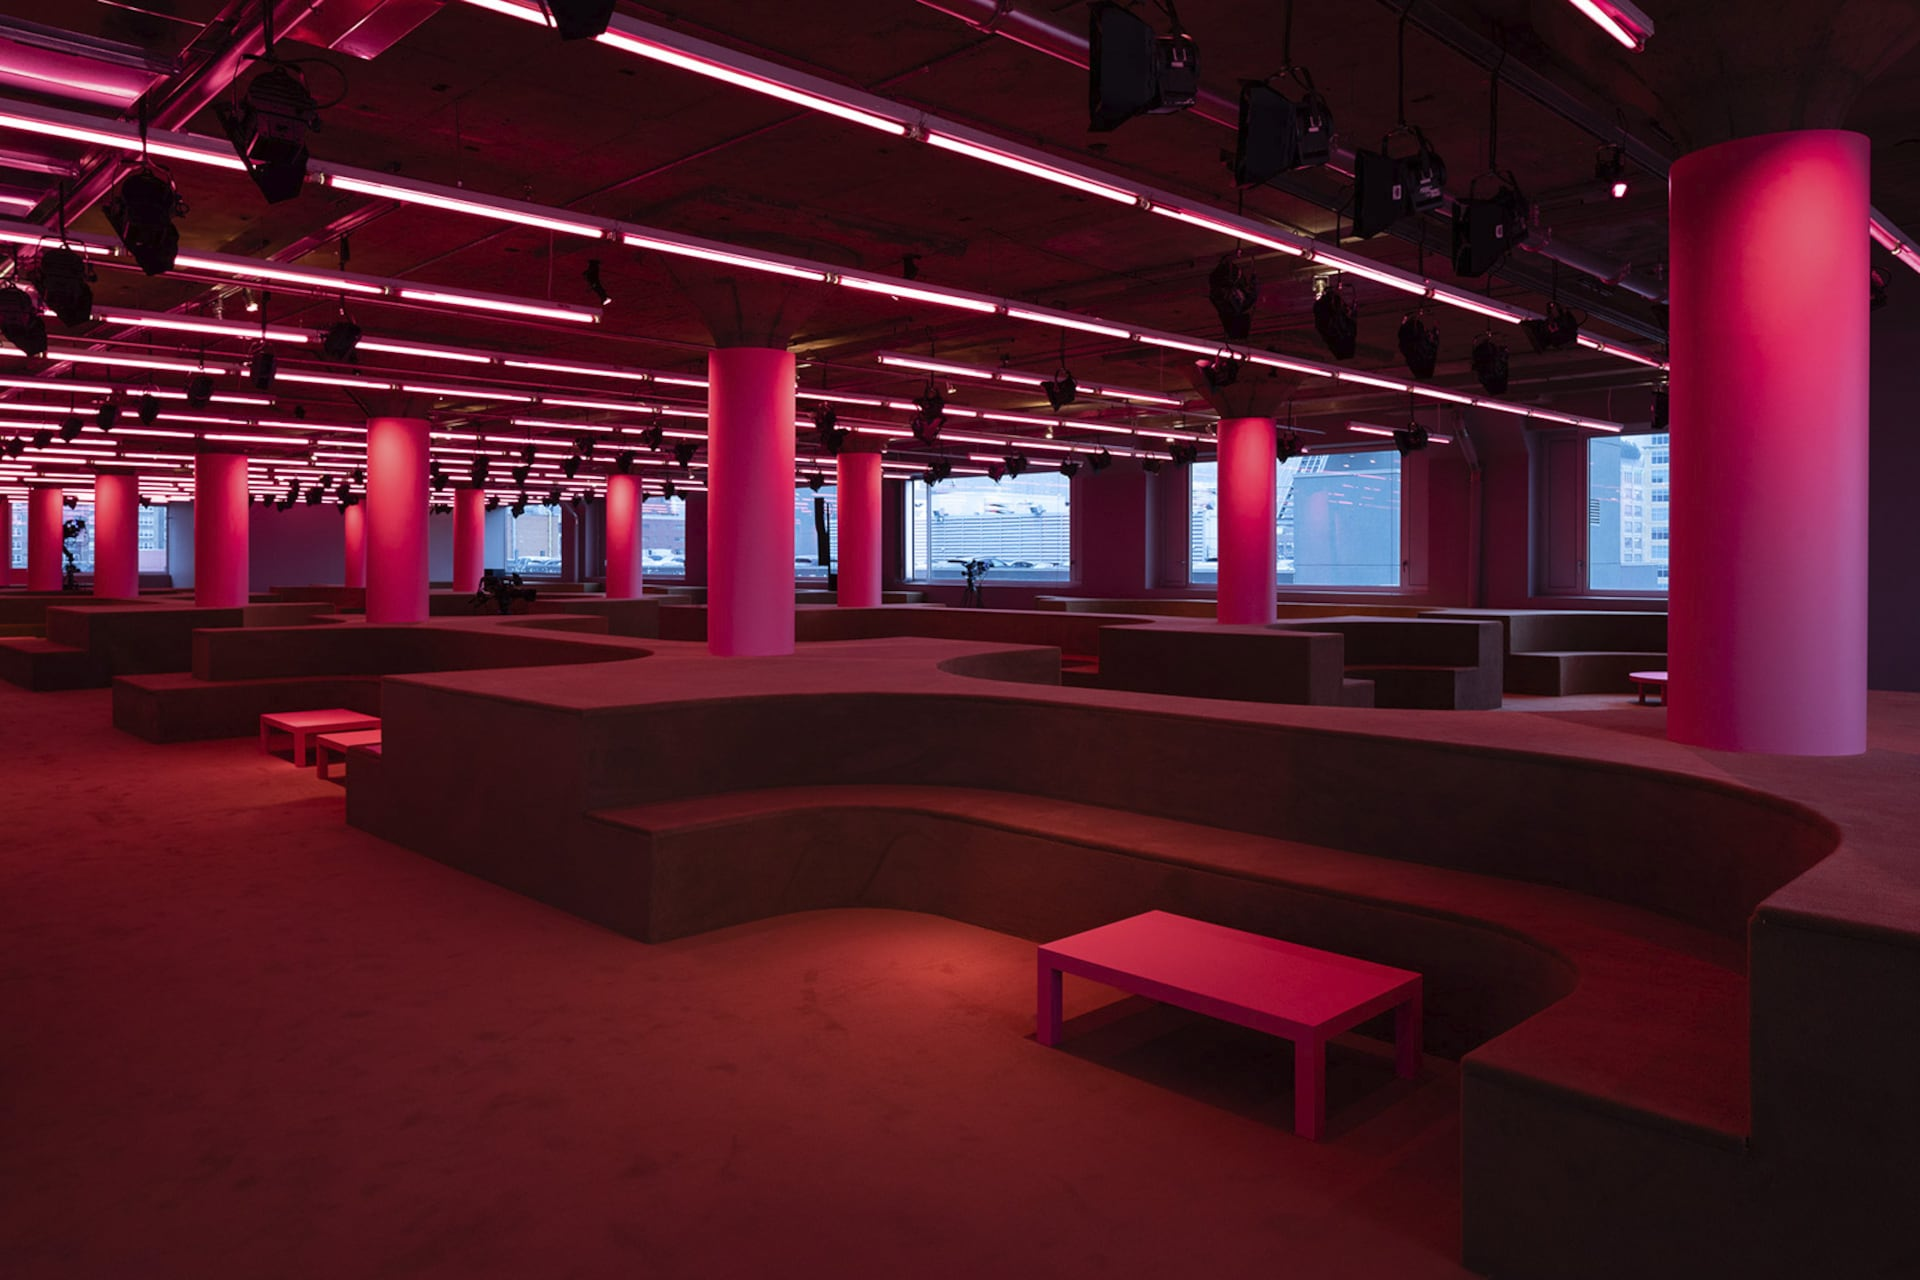 Prada Resort 2020 fashion show space 5. For the Prada 2020 Resort Show, AMO takes over the Piano Factory, Prada US's headquarters, and reinterprets it as an intimate setting for social gathering.